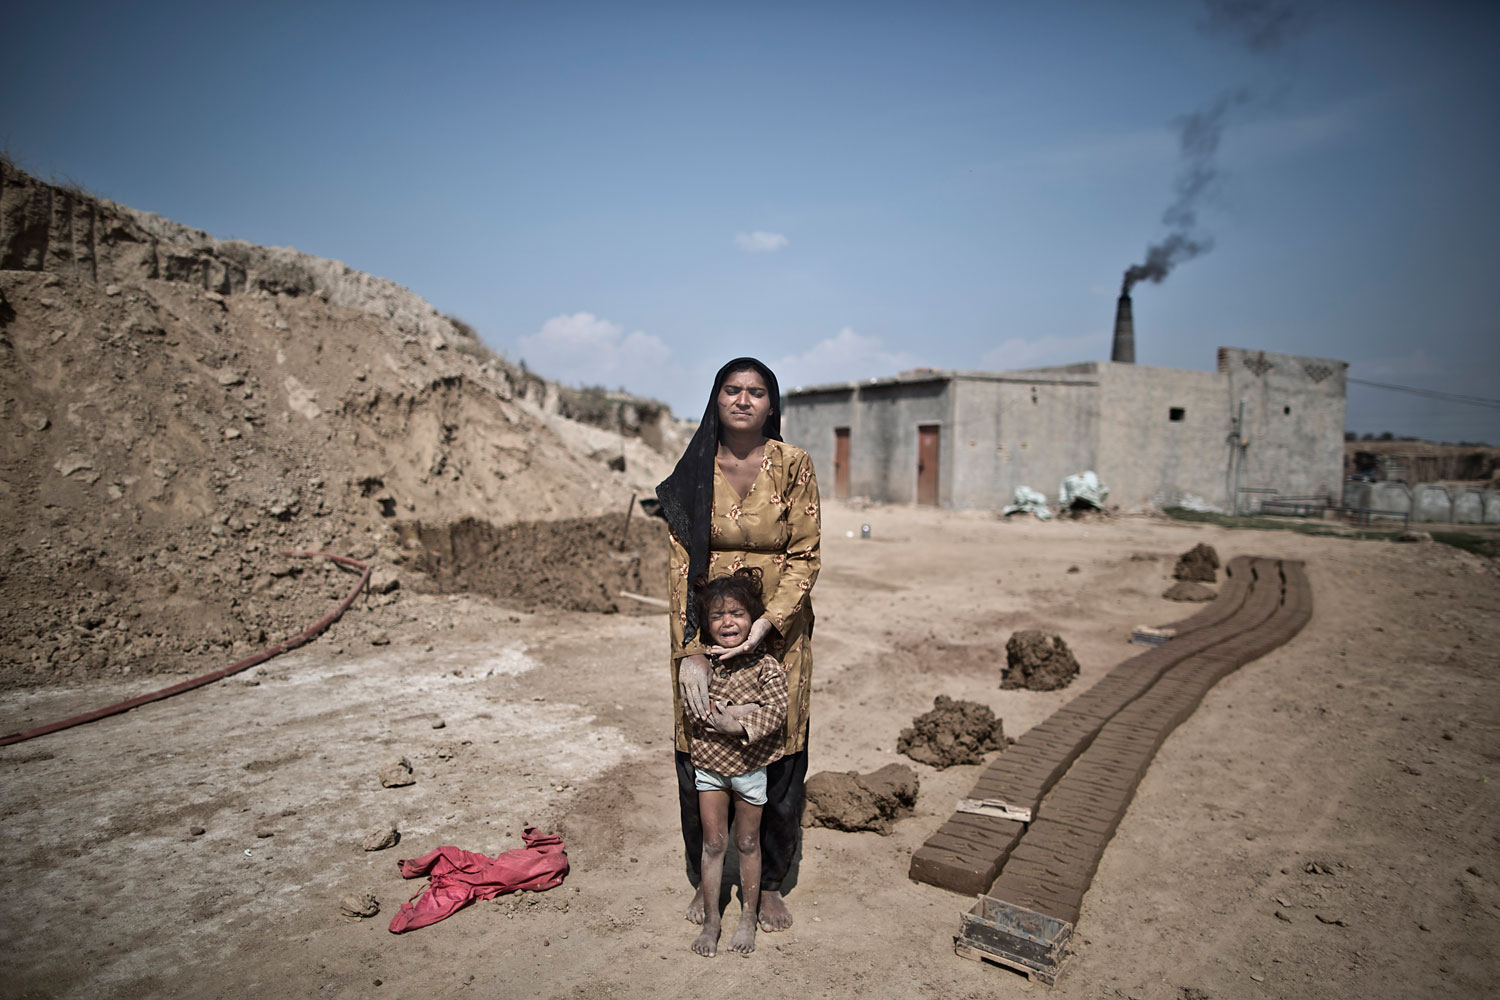 Khurshid Mumtaz, 25, a Pakistani brick factory worker, comforts her crying daughter Haima, 4, while posing for a picture at the site of her work in Mandra, near Rawalpindi, Pakistan, March 2, 2014. Khurshid and her husband are in debt to their employer the amount of 194,000 rupees (approximately $1940).